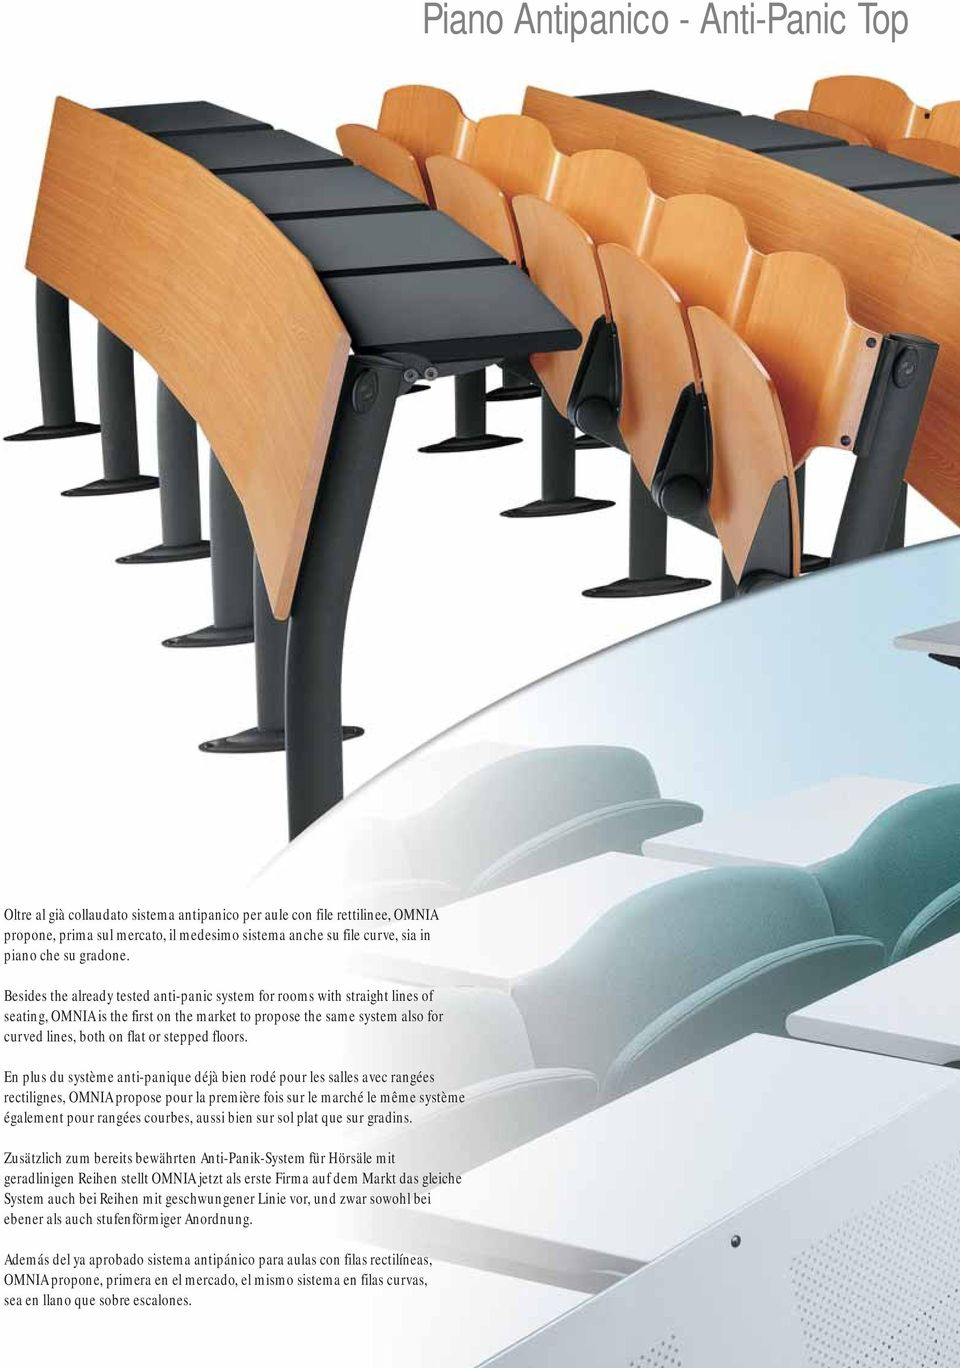 Besides the already tested anti-panic system for rooms with straight lines of seating, OMNIA is the first on the market to propose the same system also for curved lines, both on flat or stepped